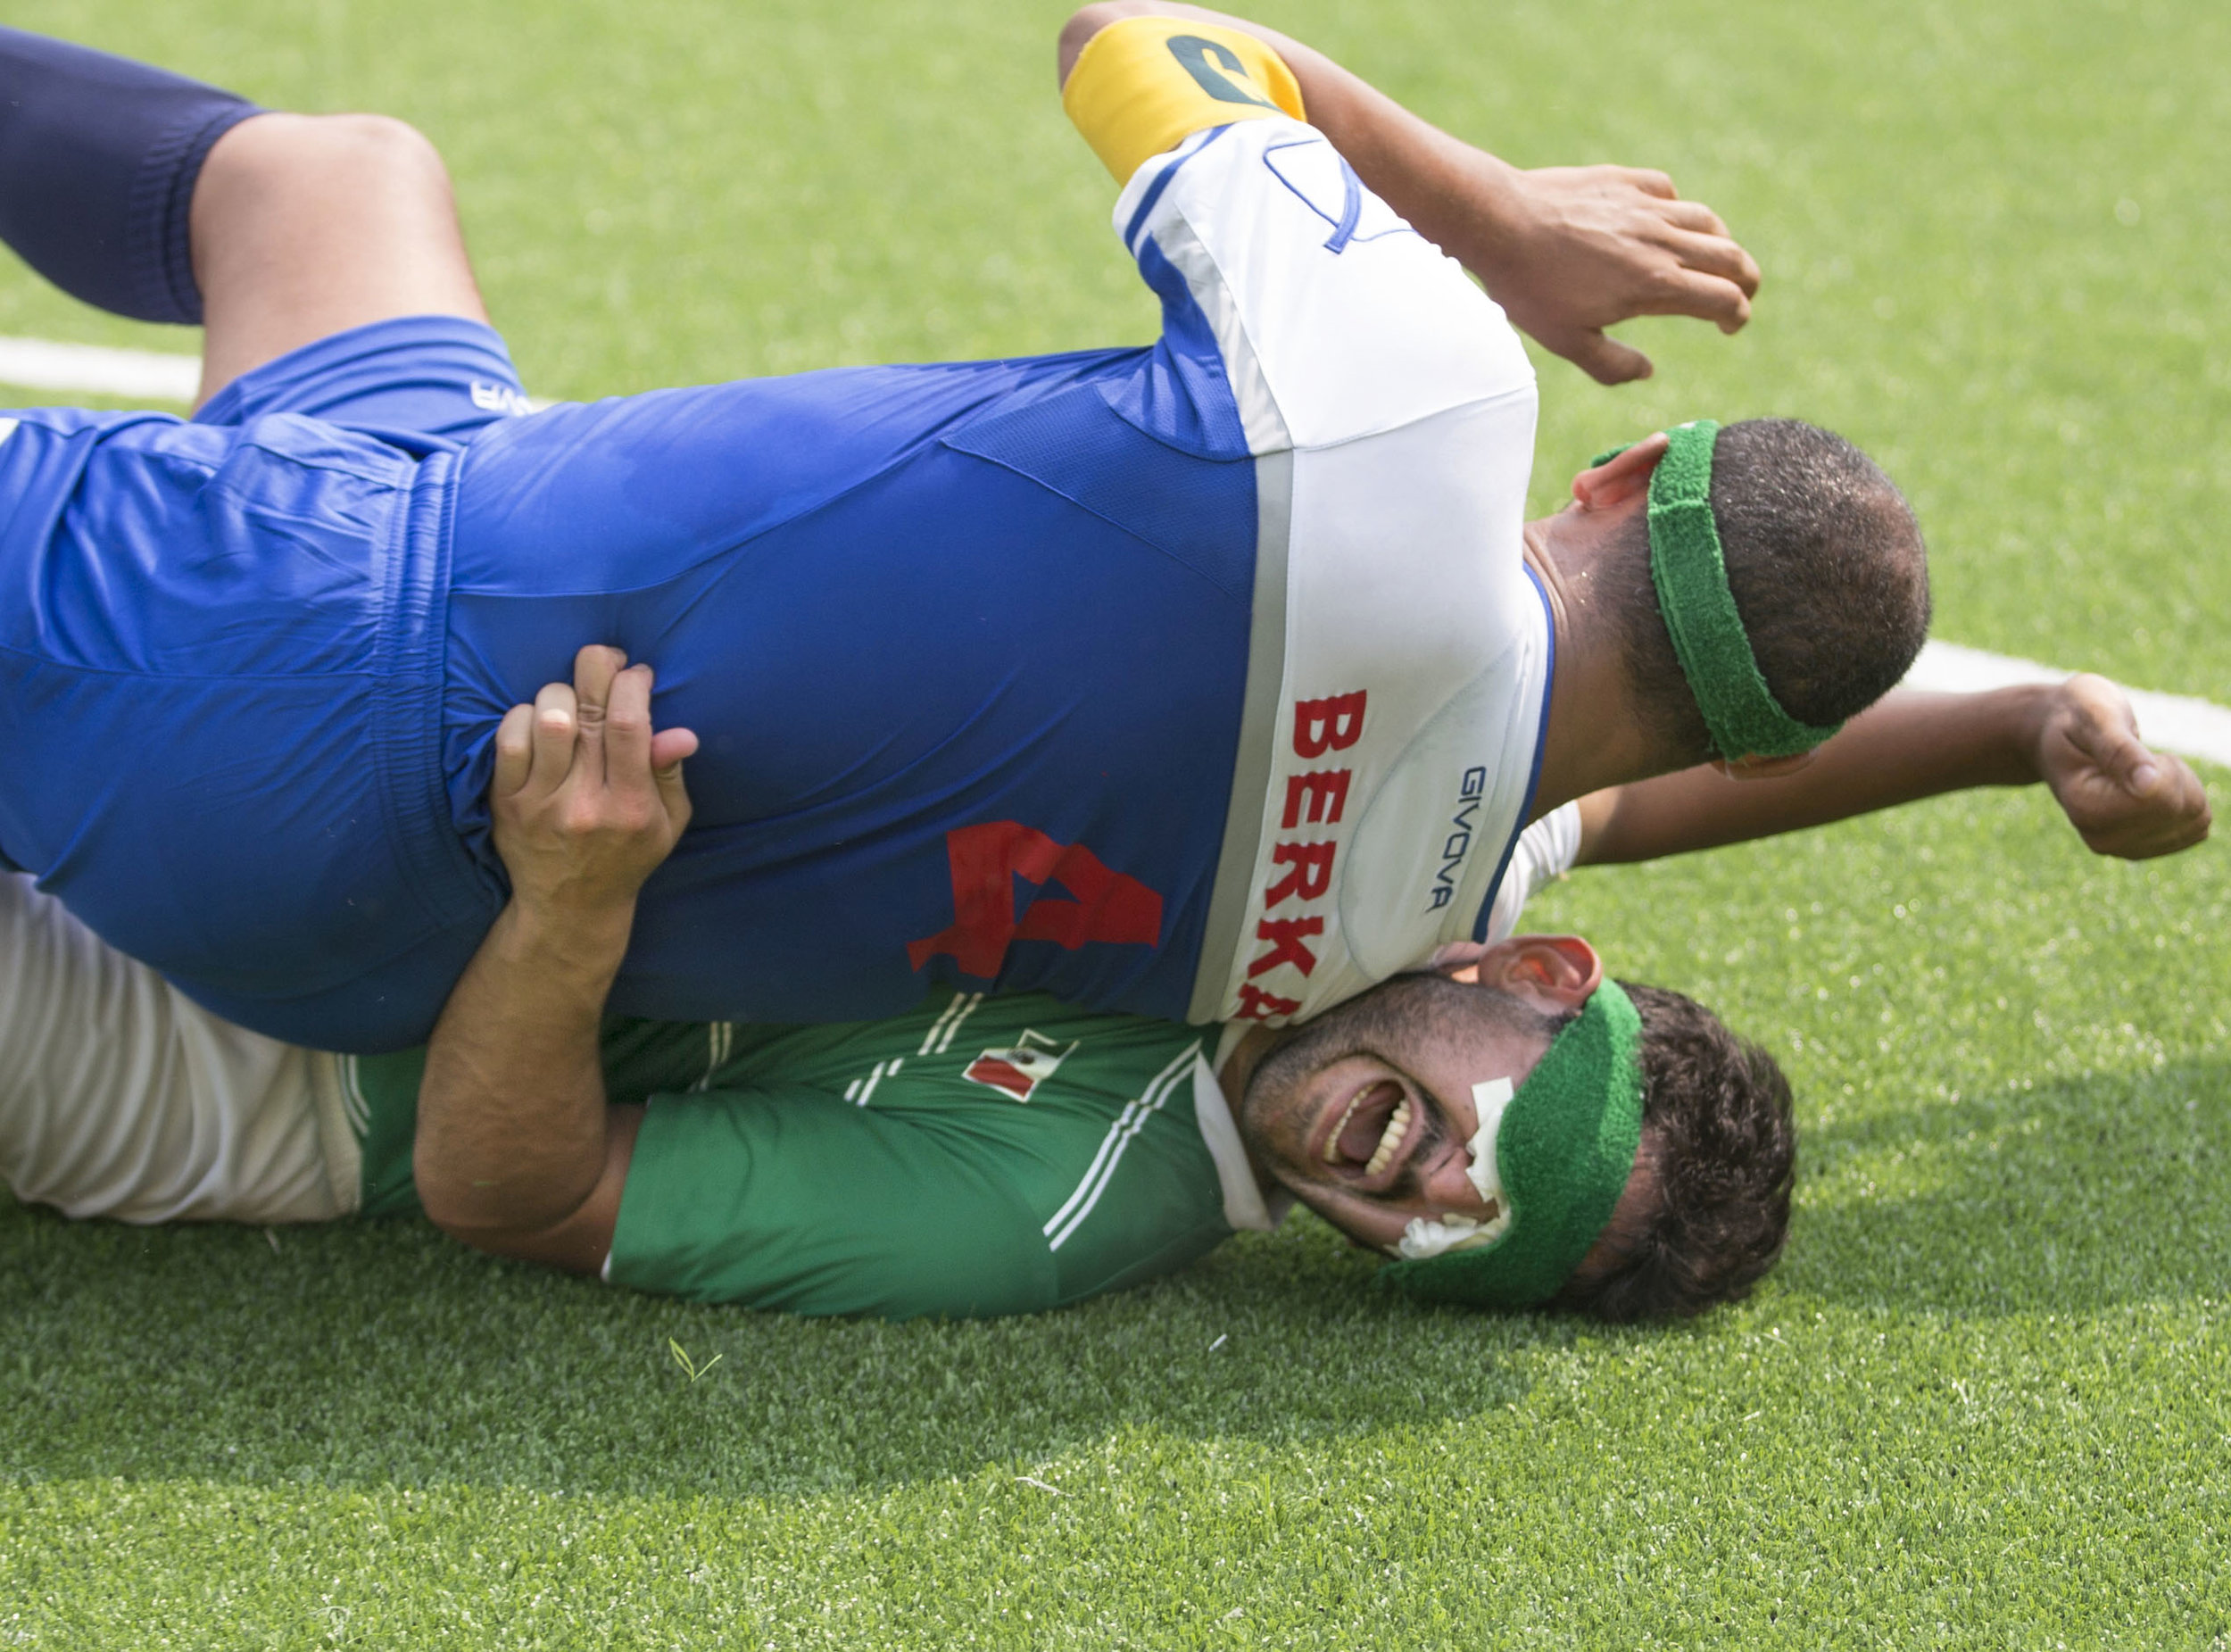 Mexican forward Jorge Lanzagorta gets flattened by Moroccan defender Imad Berka after the two collided while fighting for control of the ball in football five-a-side Thursday, Sept. 15, 2016, at the 2016 Paralympic Games. Mexico scored twice in the second half to win the game, 2-0.